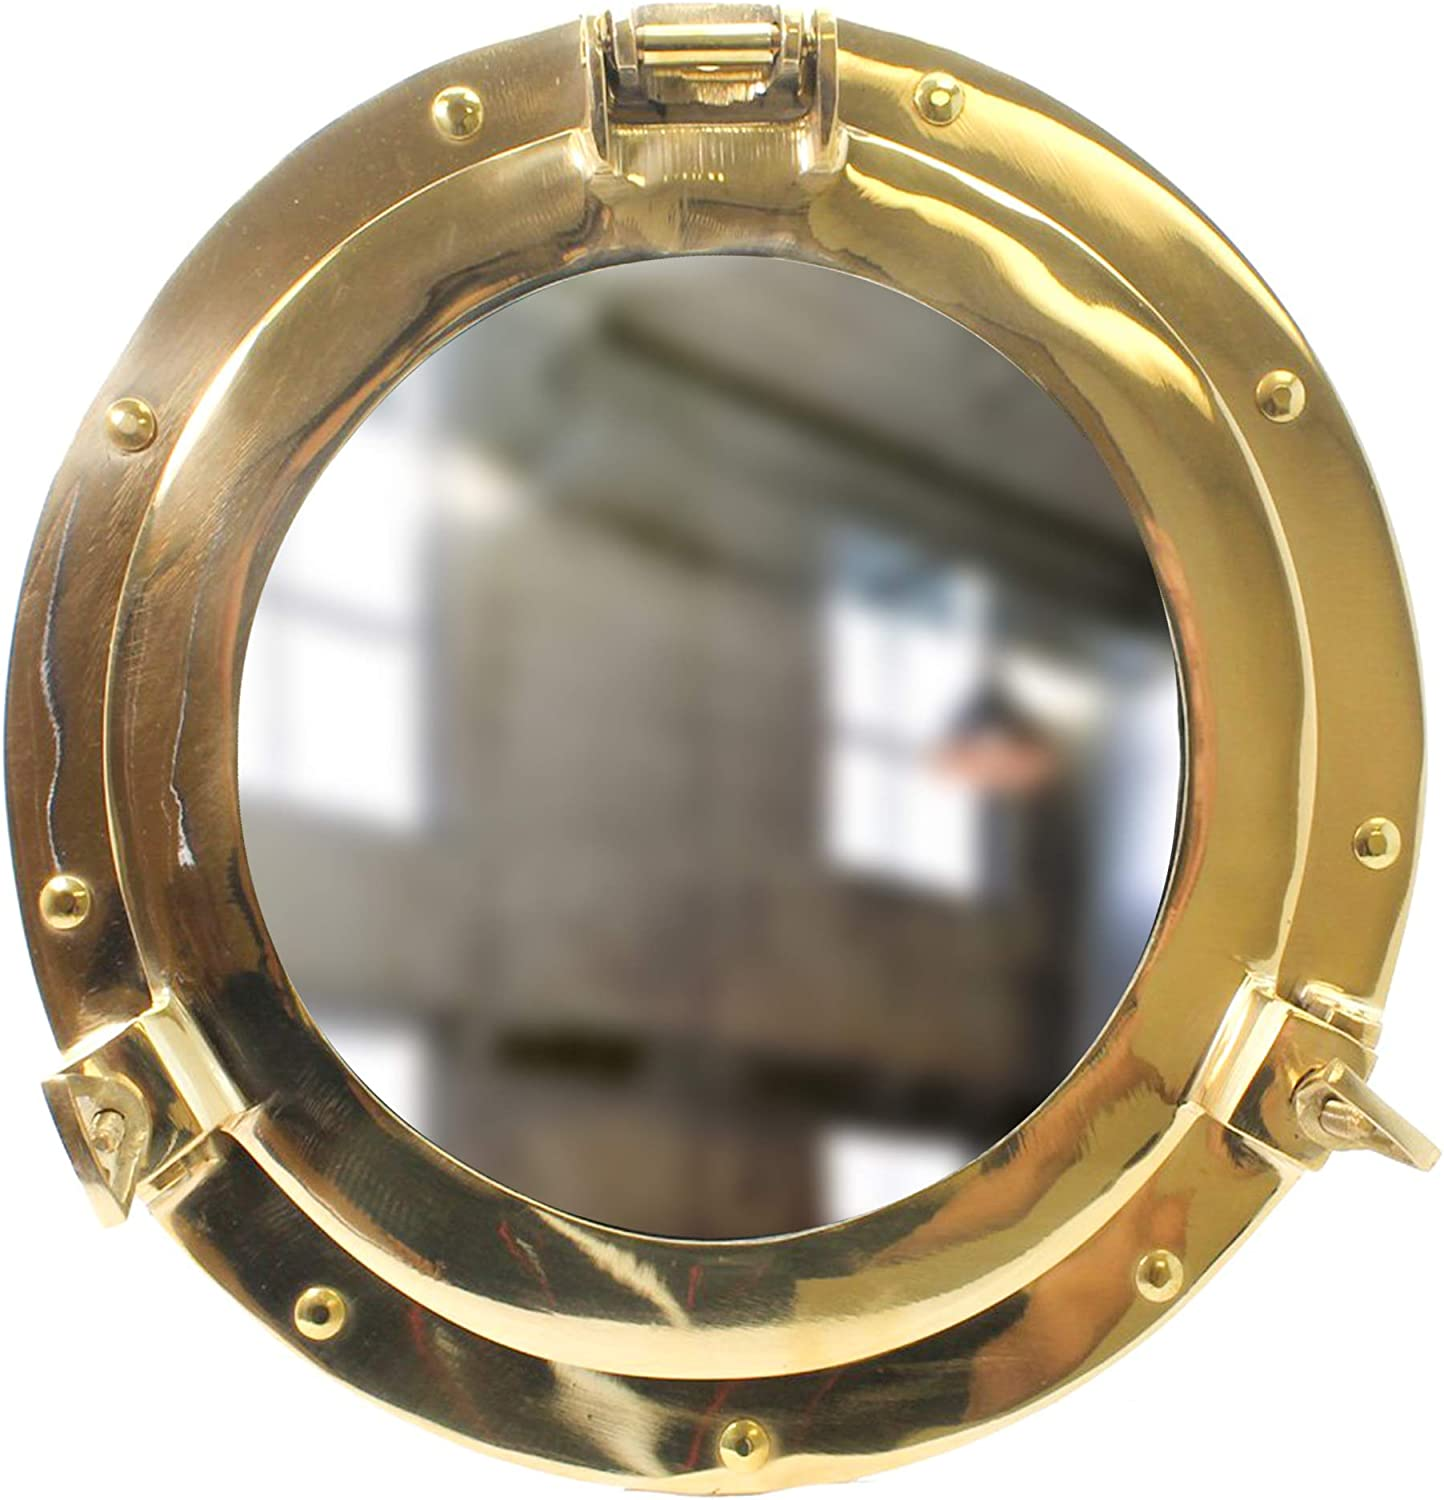 "11"" Brass Porthole with Glass - Shiny Finish - Boat Window Nautical Ship Décor - Maritime Fan Gift"